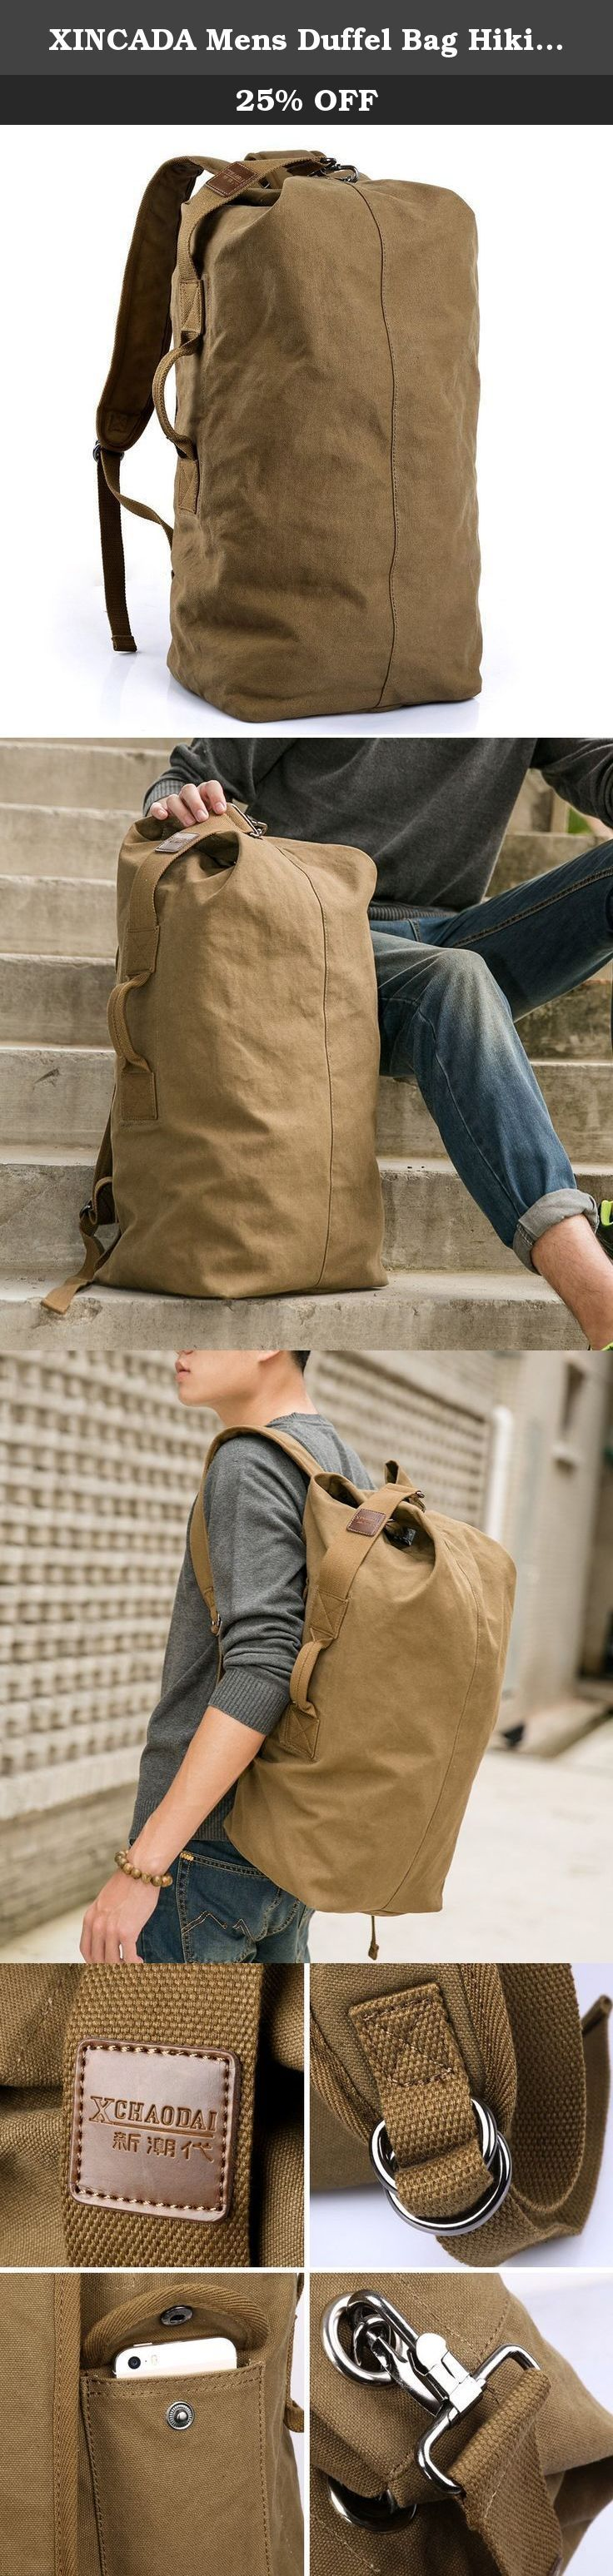 XINCADA Mens Duffel Bag Hiking Camping Waterproof Canvas Vintage Backpack (Khaki). About this backpack: This backpack is mainly designed for travel enthusiast and outdoors lovers. This backpack is large enough for your daily supplies and it is suitable for traveling, outdoors and sports. Reasonable and large capacity will make your things organized and safe. High quality hardware fittings are going well with this backpack. Key features of this bag: Reasonable capacity, durable material...